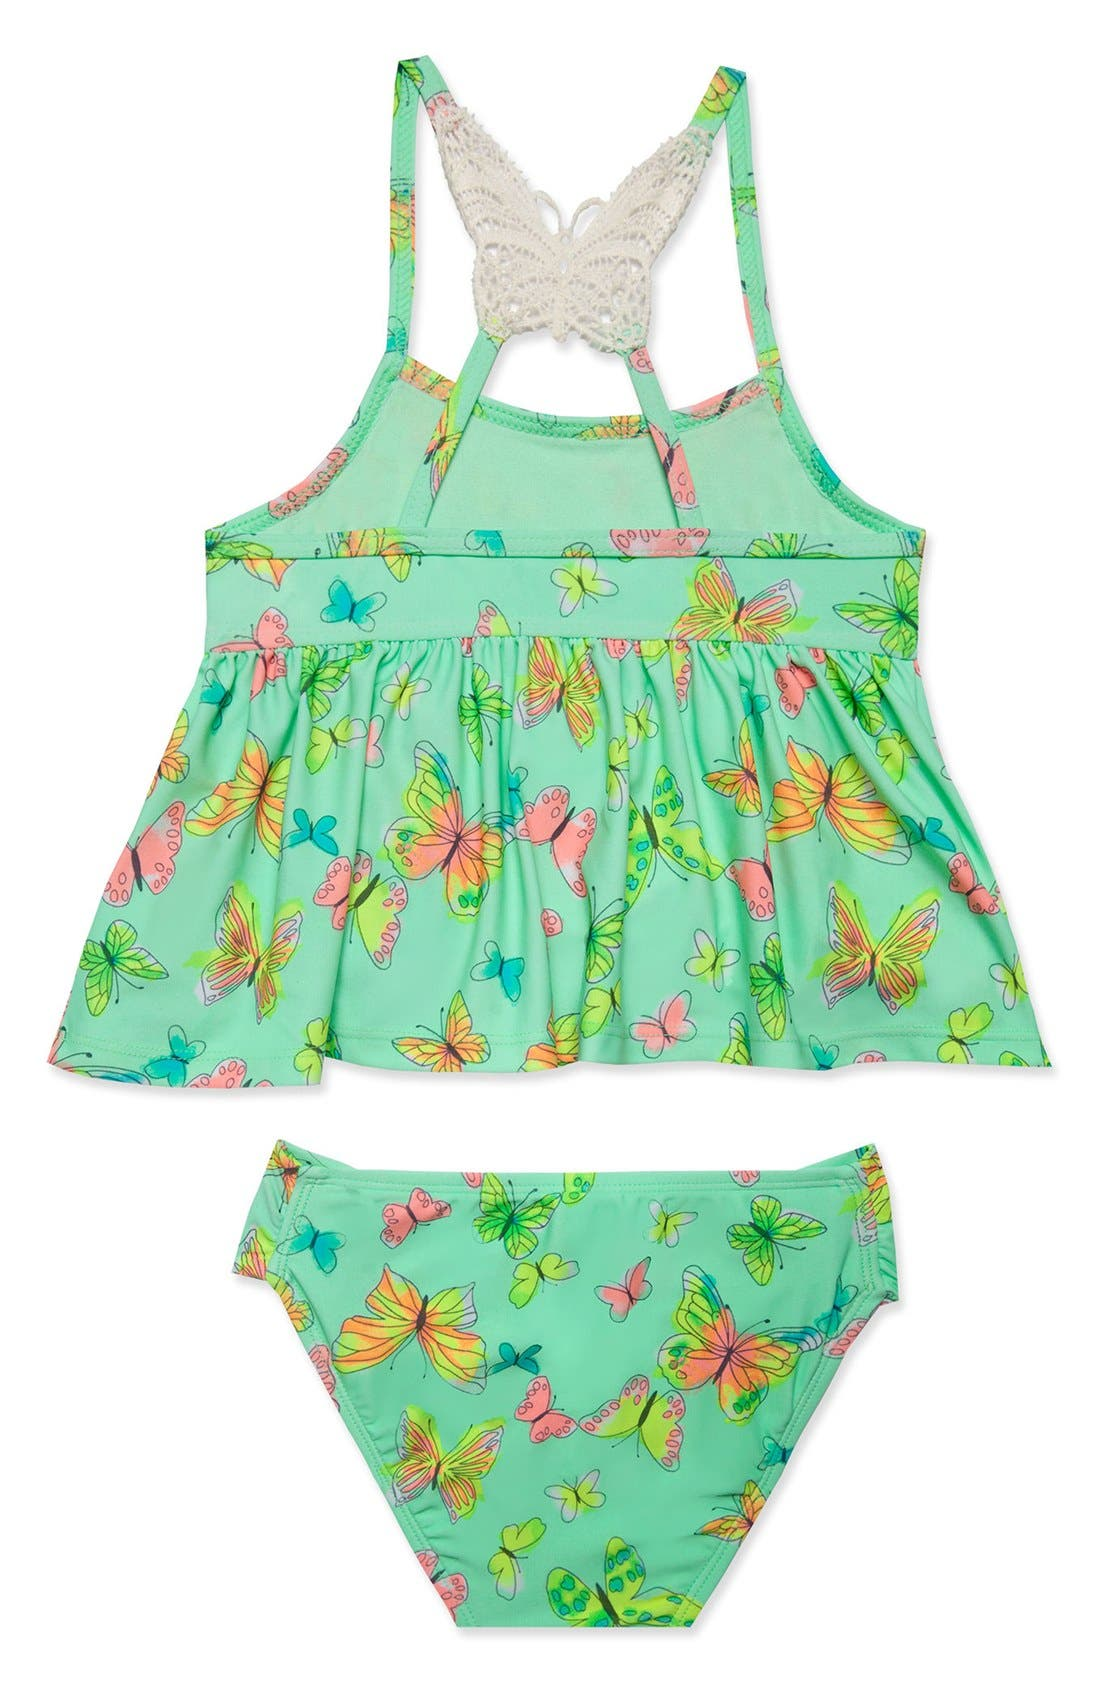 'Butterfly' Two-Piece Tankini Swimsuit,                             Alternate thumbnail 2, color,                             332